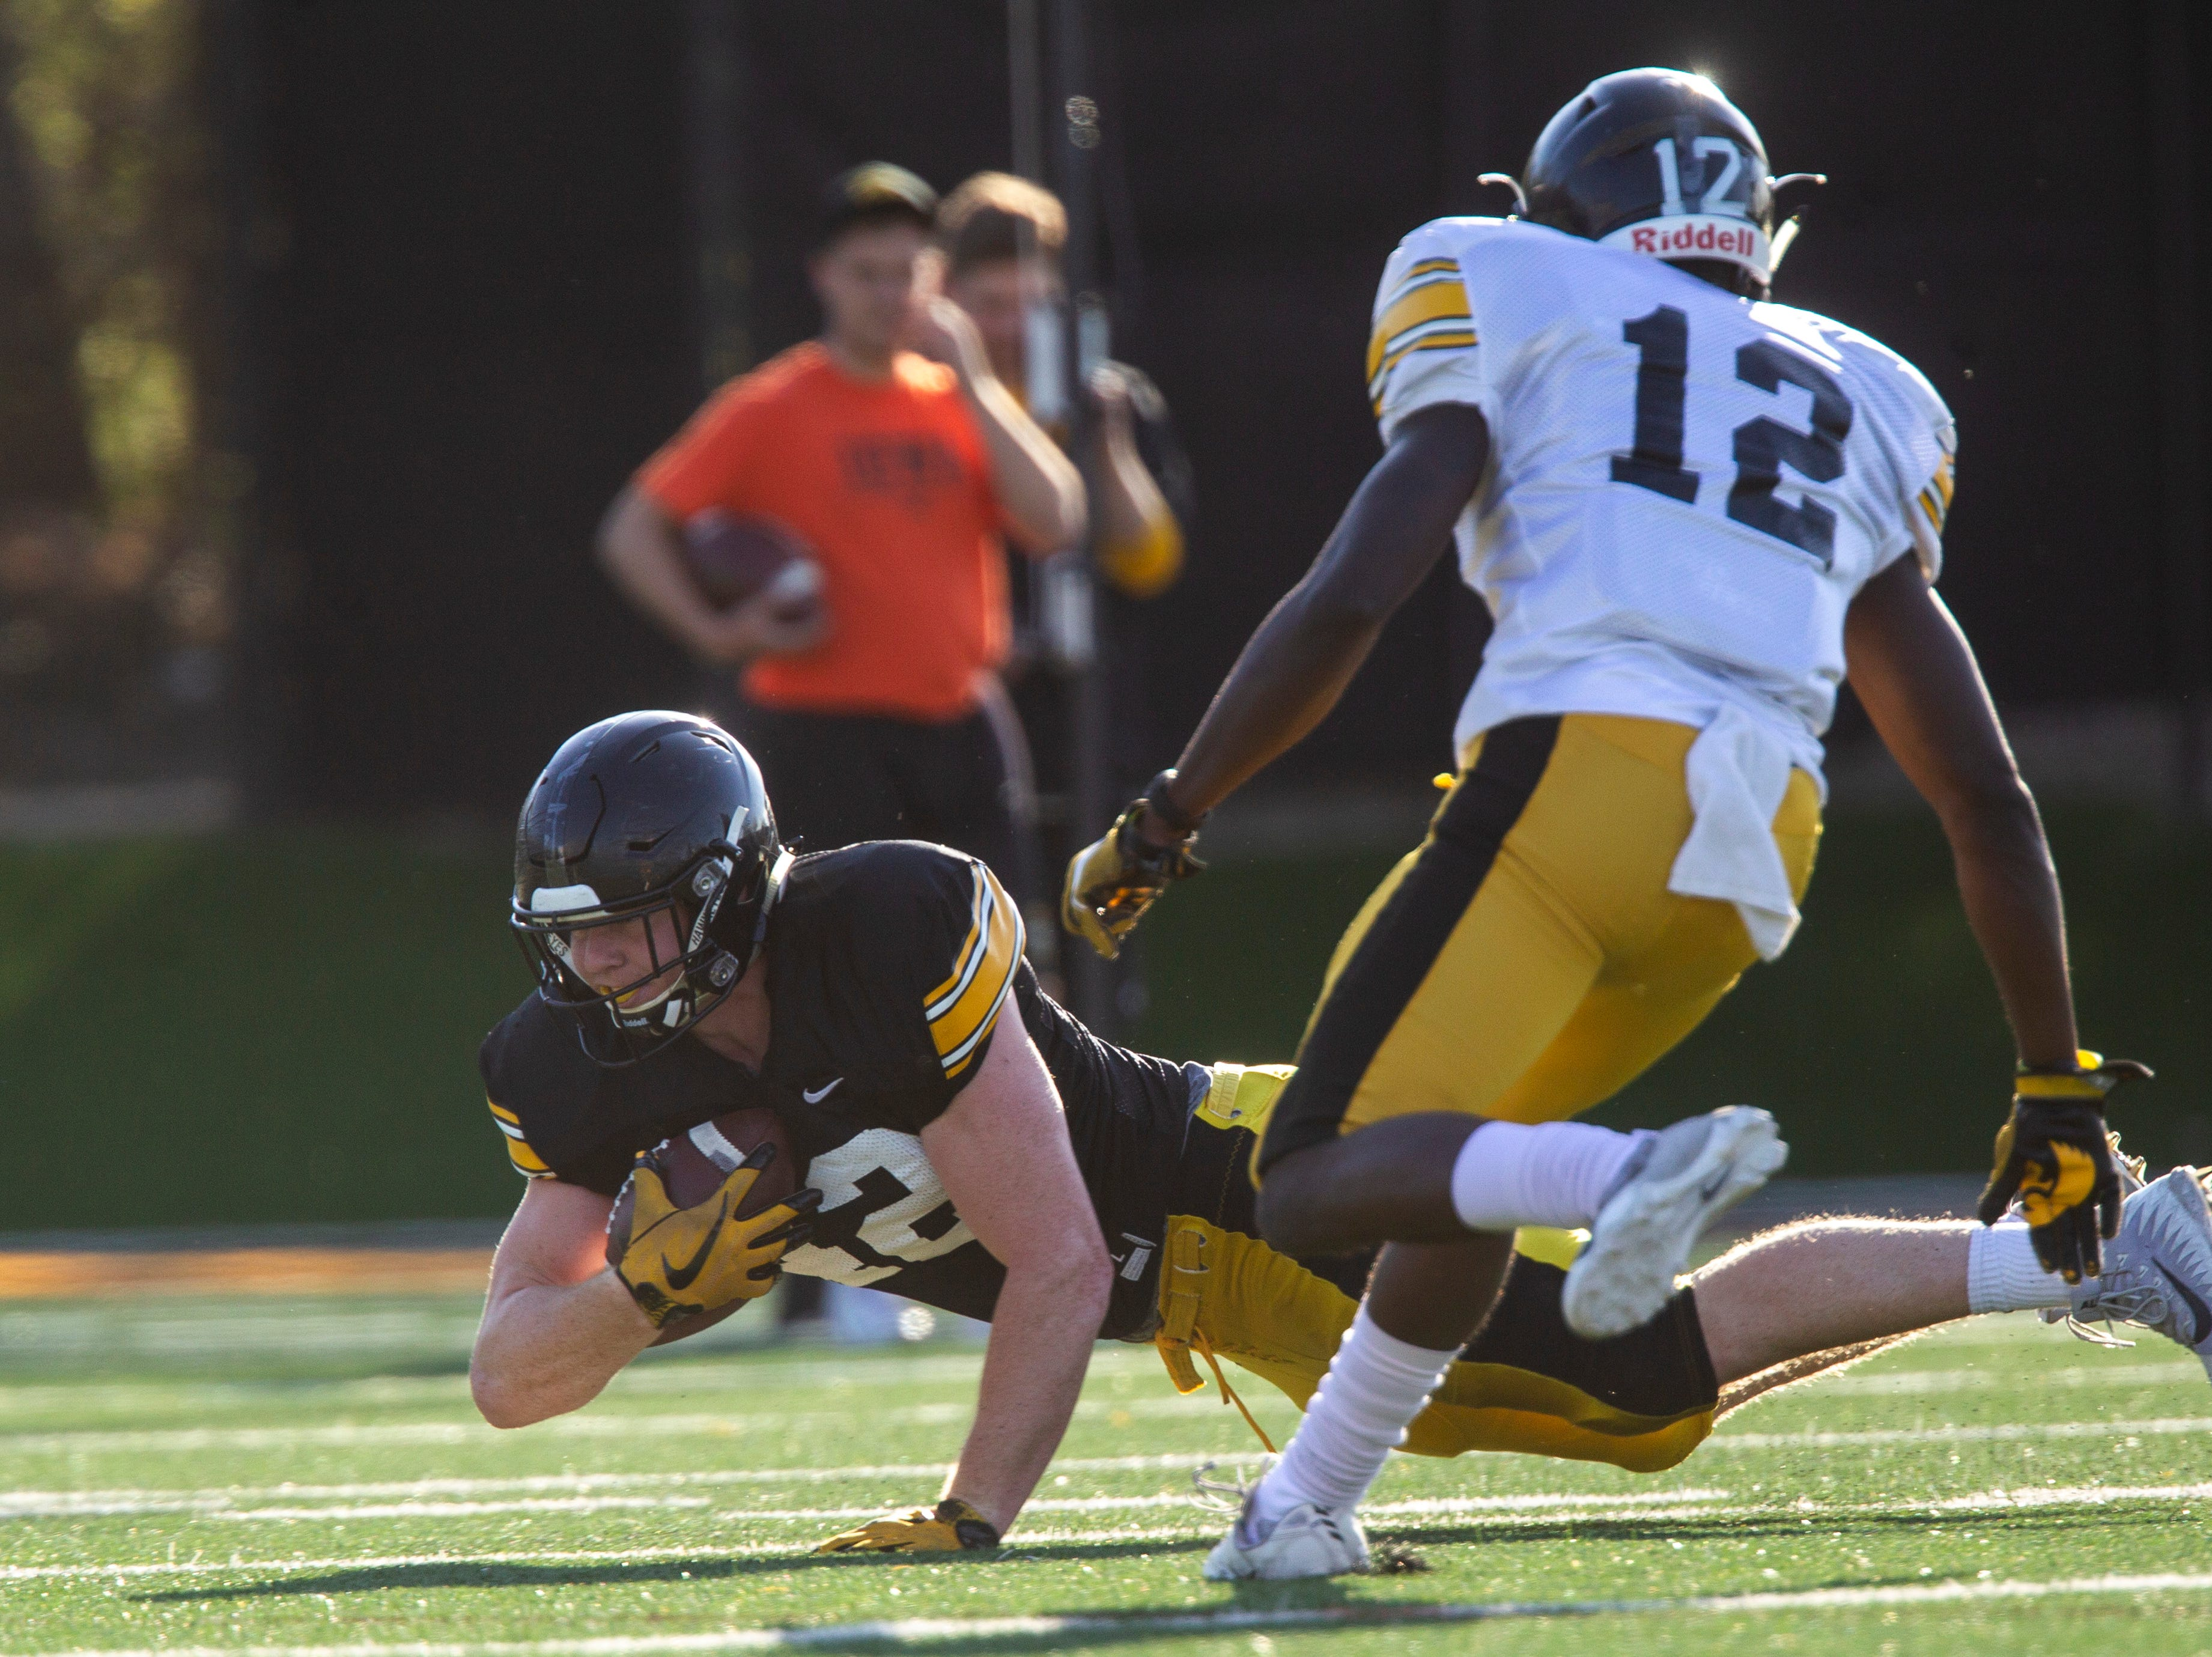 Iowa tight end Shaun Beyer (42) makes a diving catch during the final spring football practice, Friday, April 26, 2019, at the University of Iowa outdoor practice facility in Iowa City, Iowa.